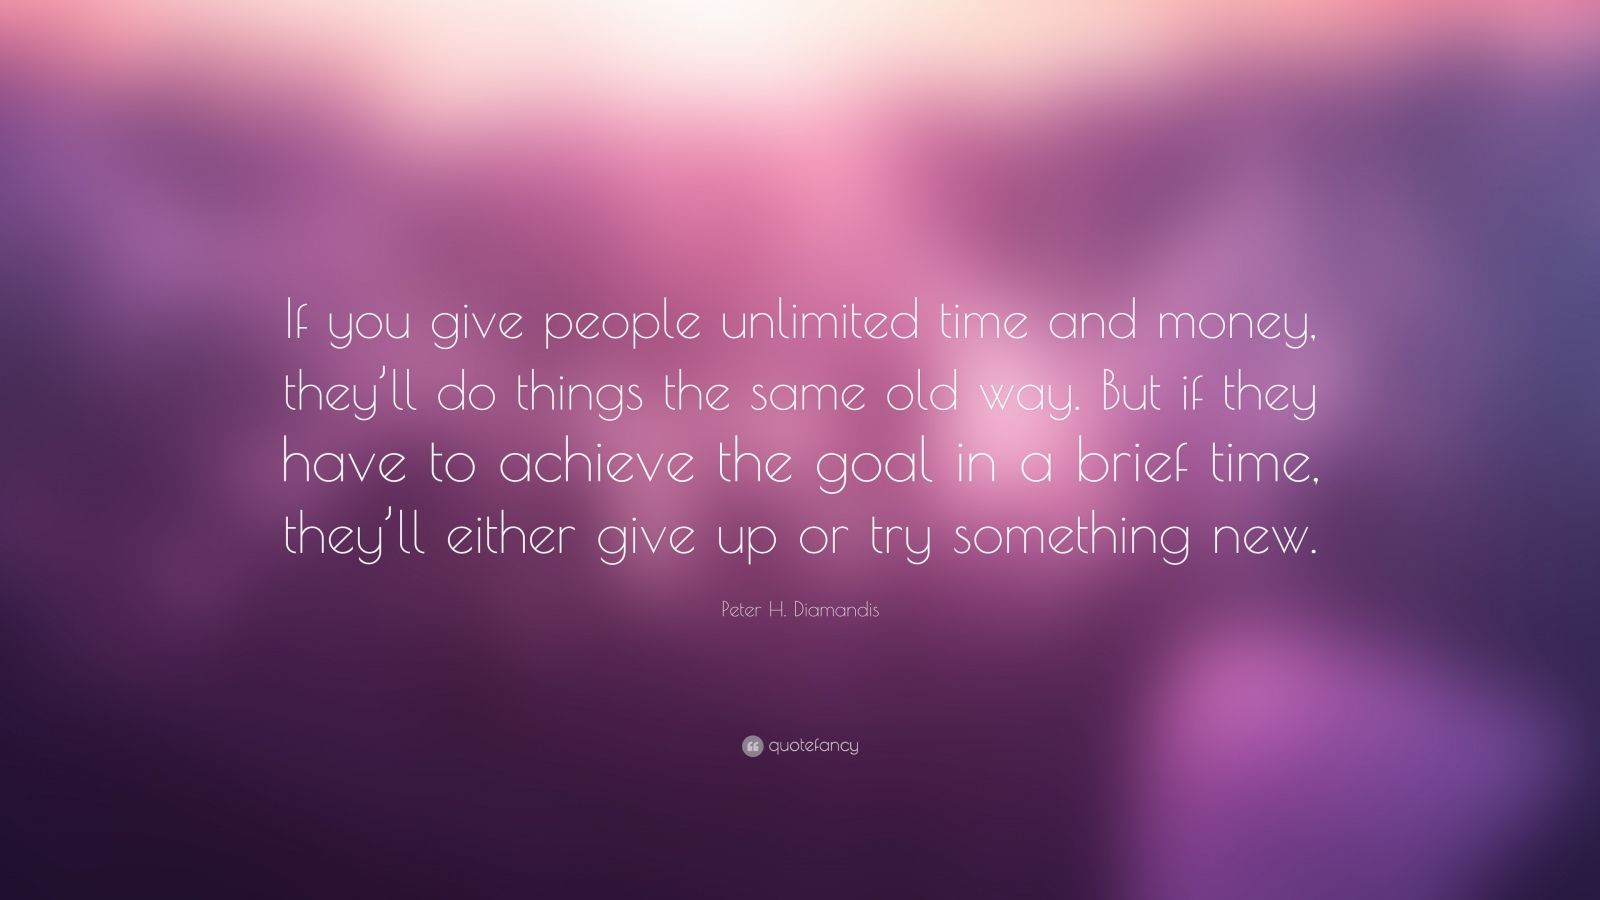 """Peter H. Diamandis Quote: """"If you give people unlimited time and money, they'll do things the same old way. But if they have to achieve the goal in a brief time, they'll either give up or try something new."""""""